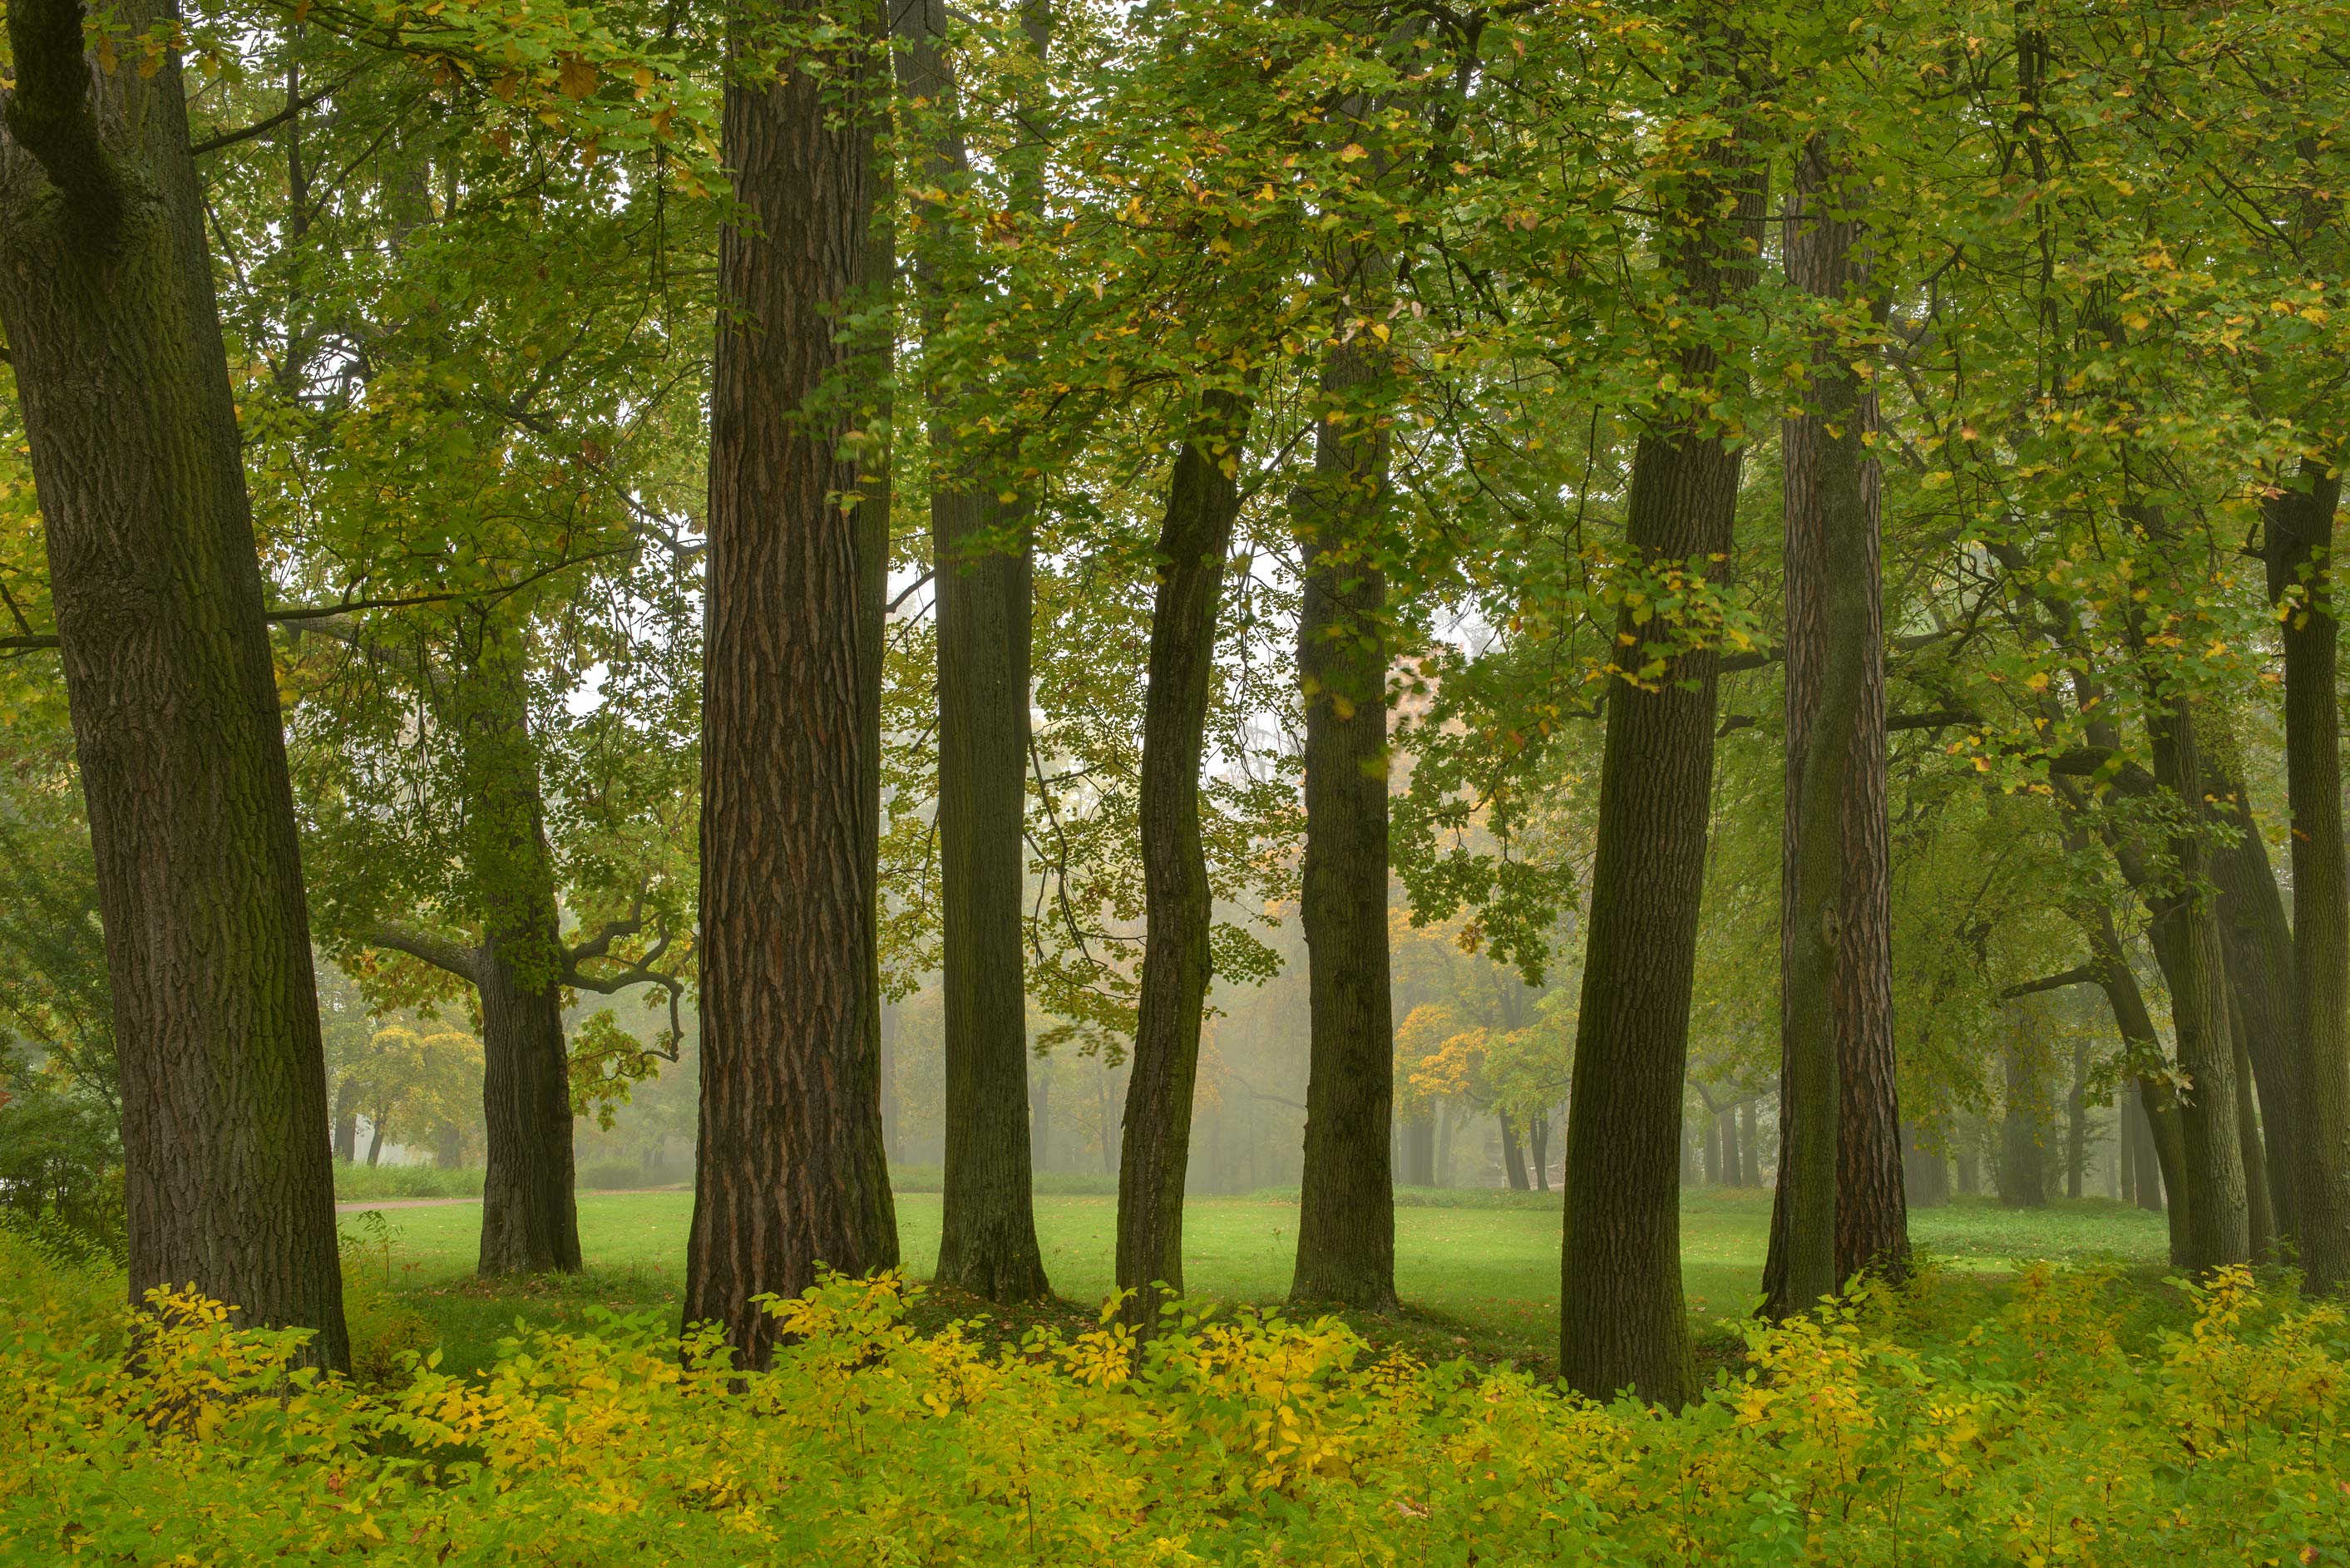 Linden trees in Alexandria Park. Peterhof, a suburb of St.Petersburg, Russia